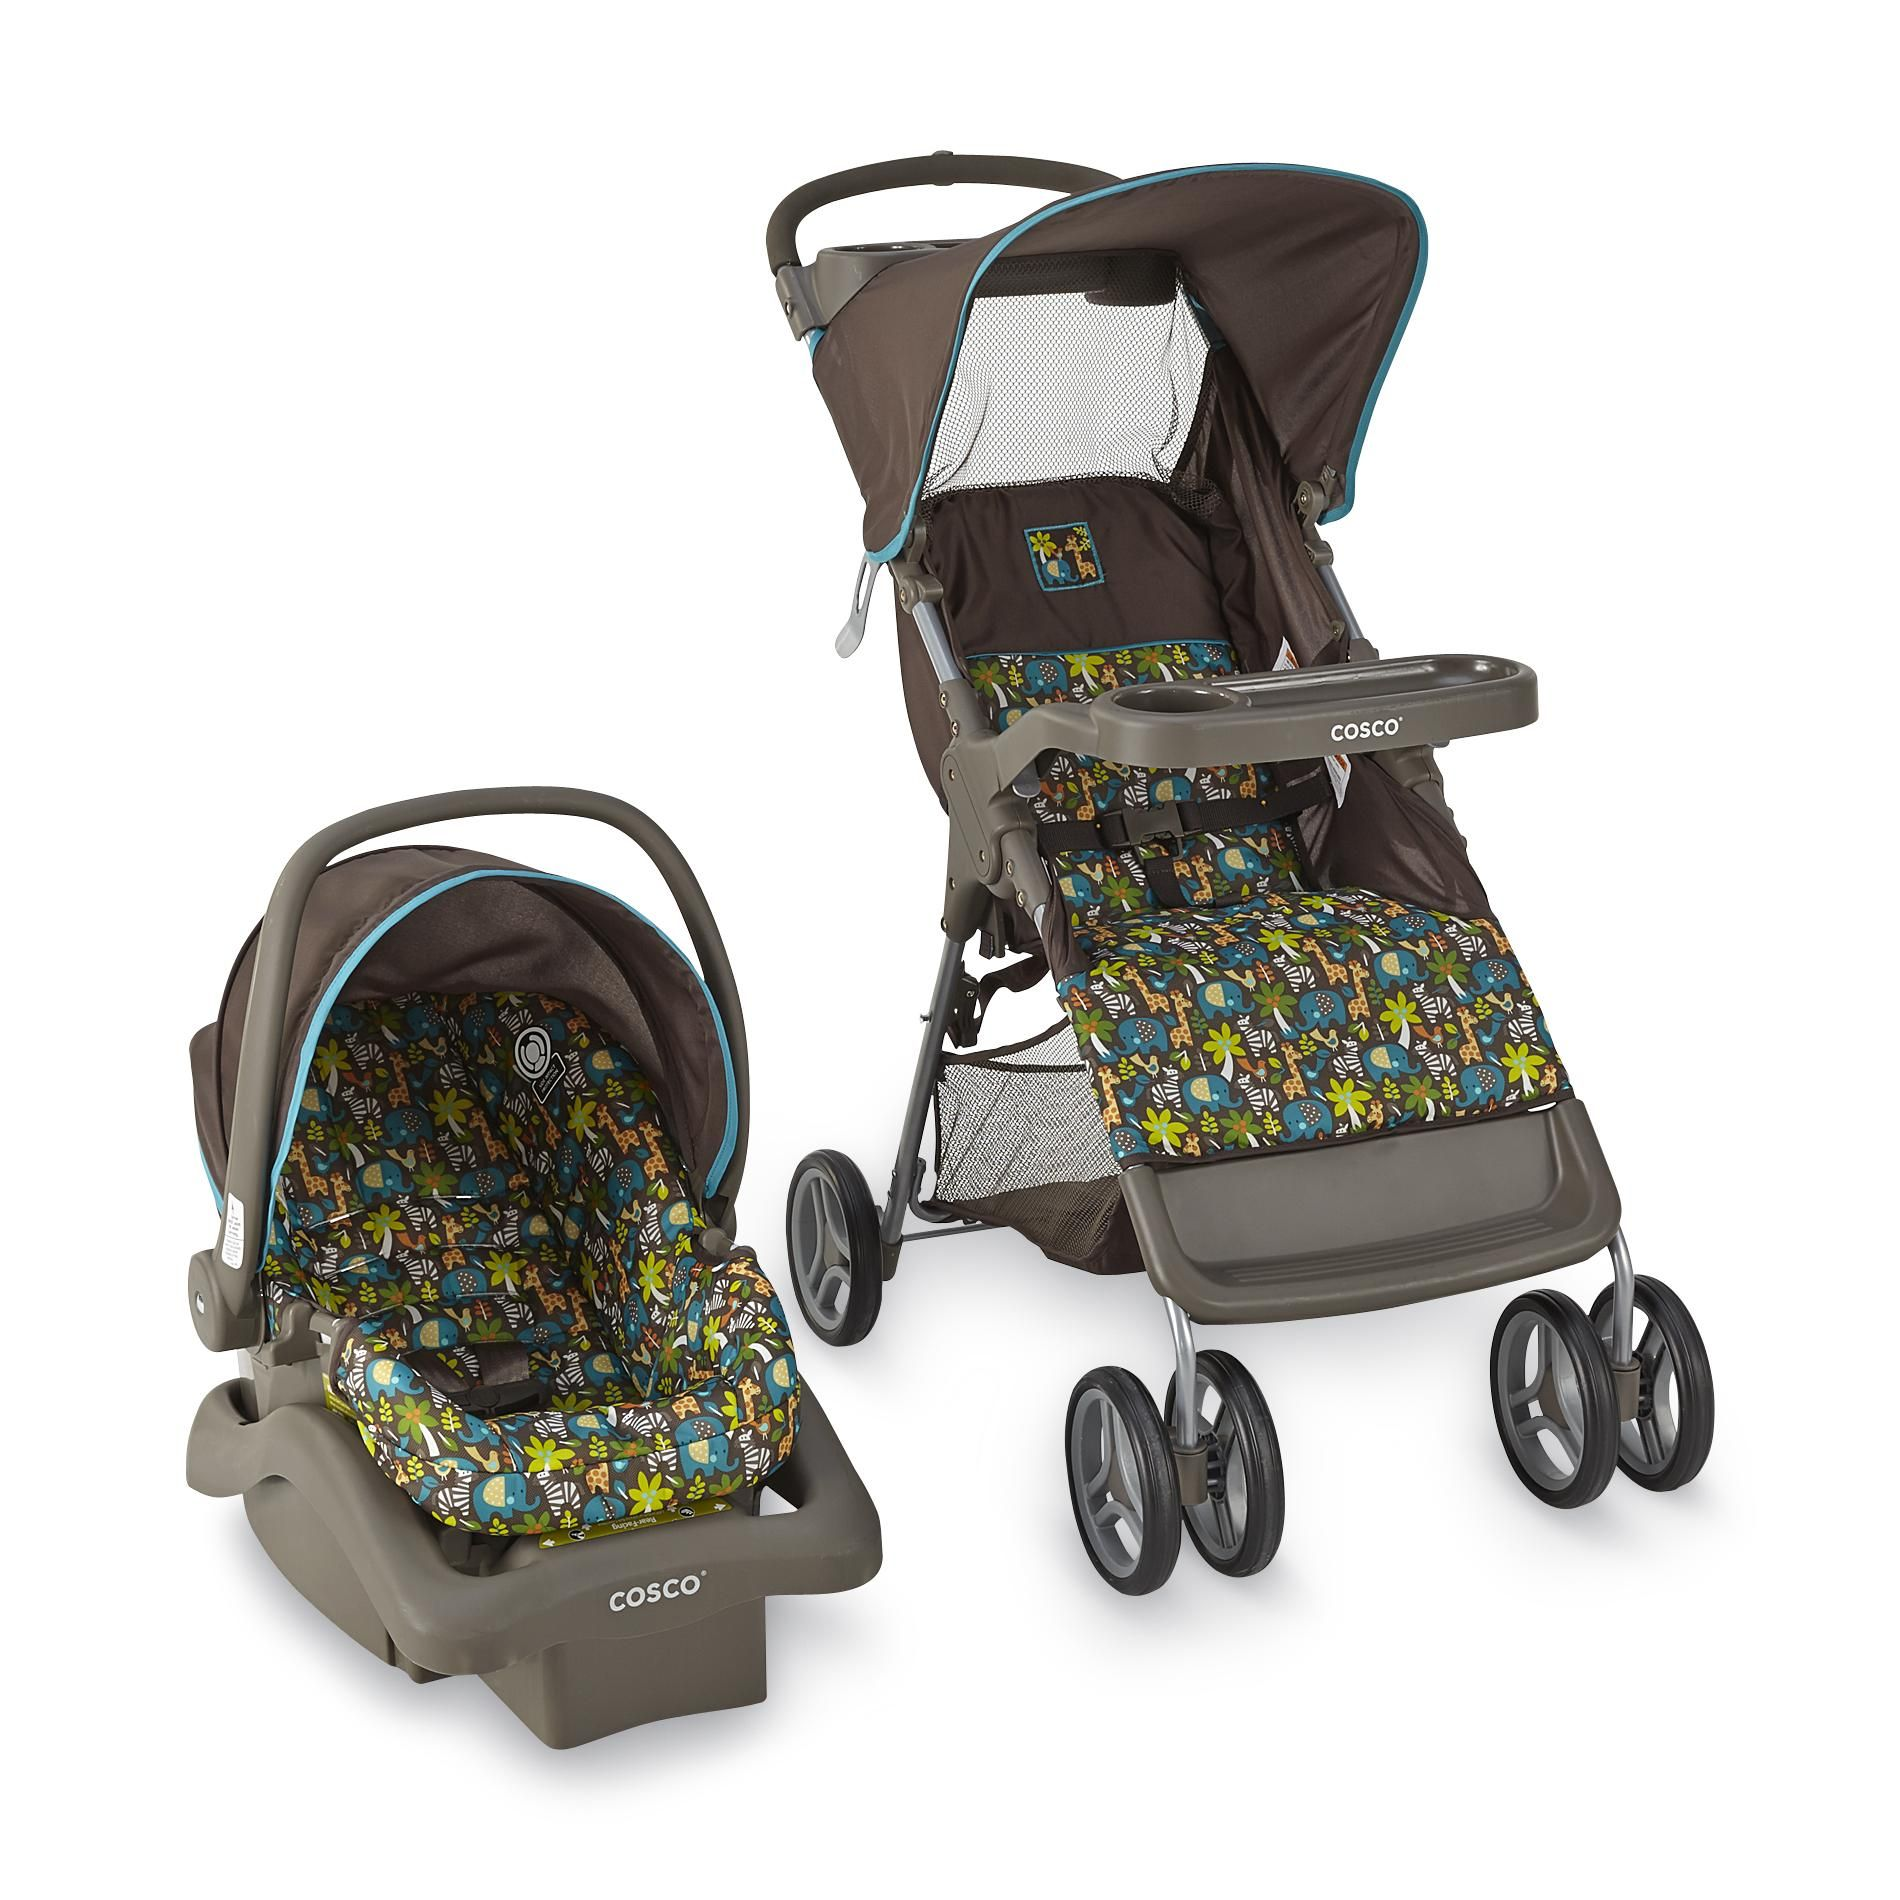 Cosco Infant's Lift & Stroll Travel System Wild Things